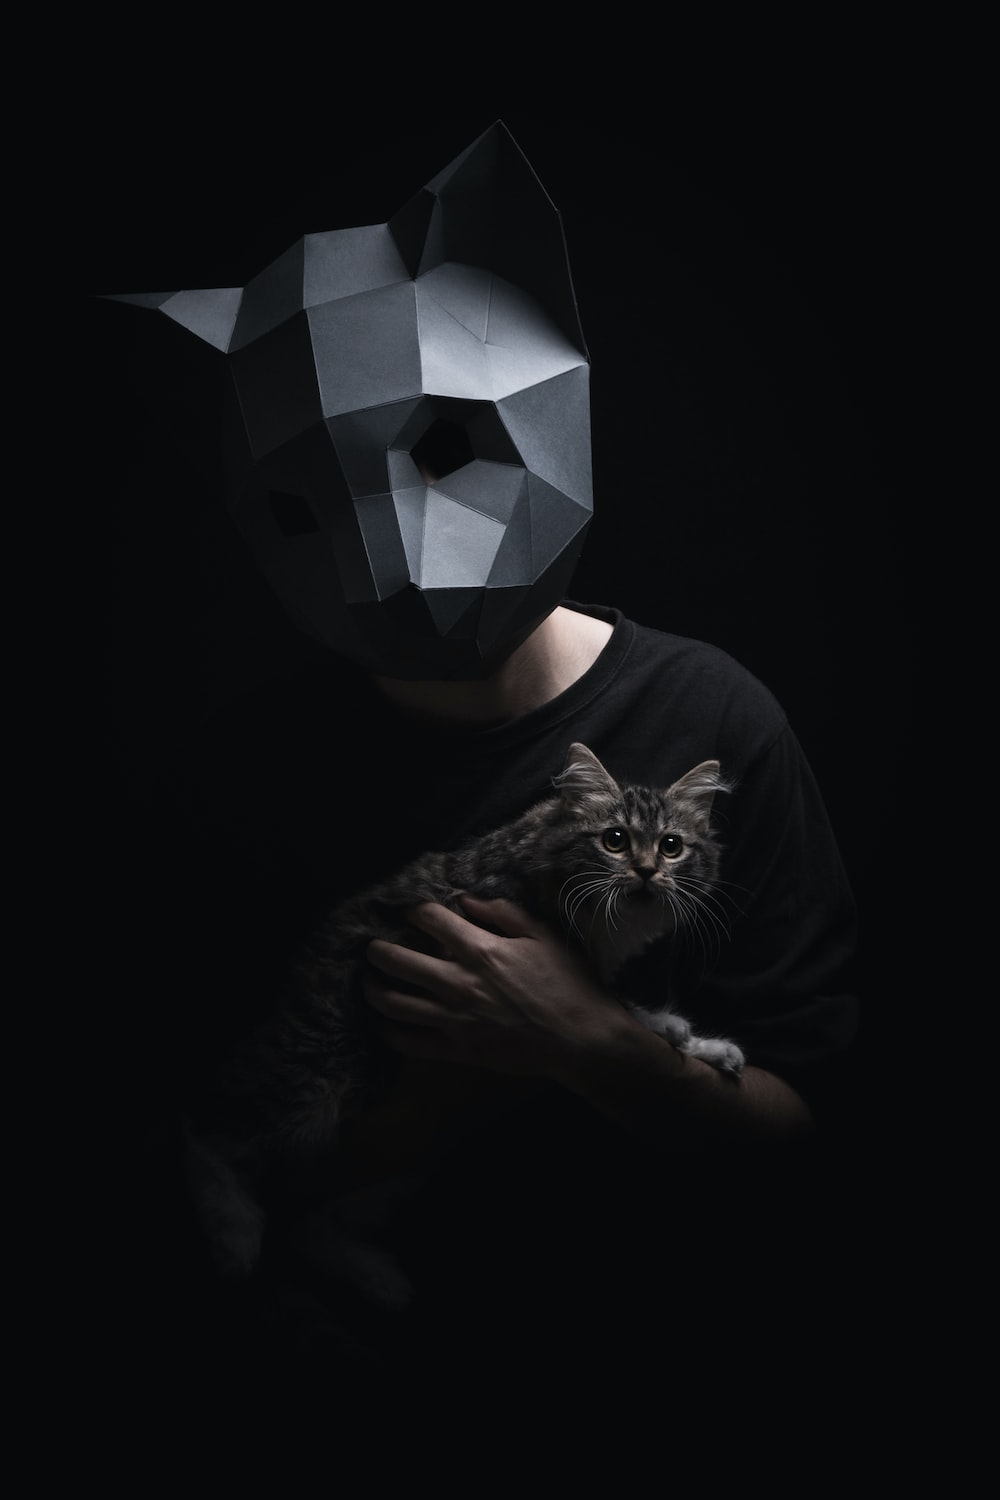 man with mask holding cat